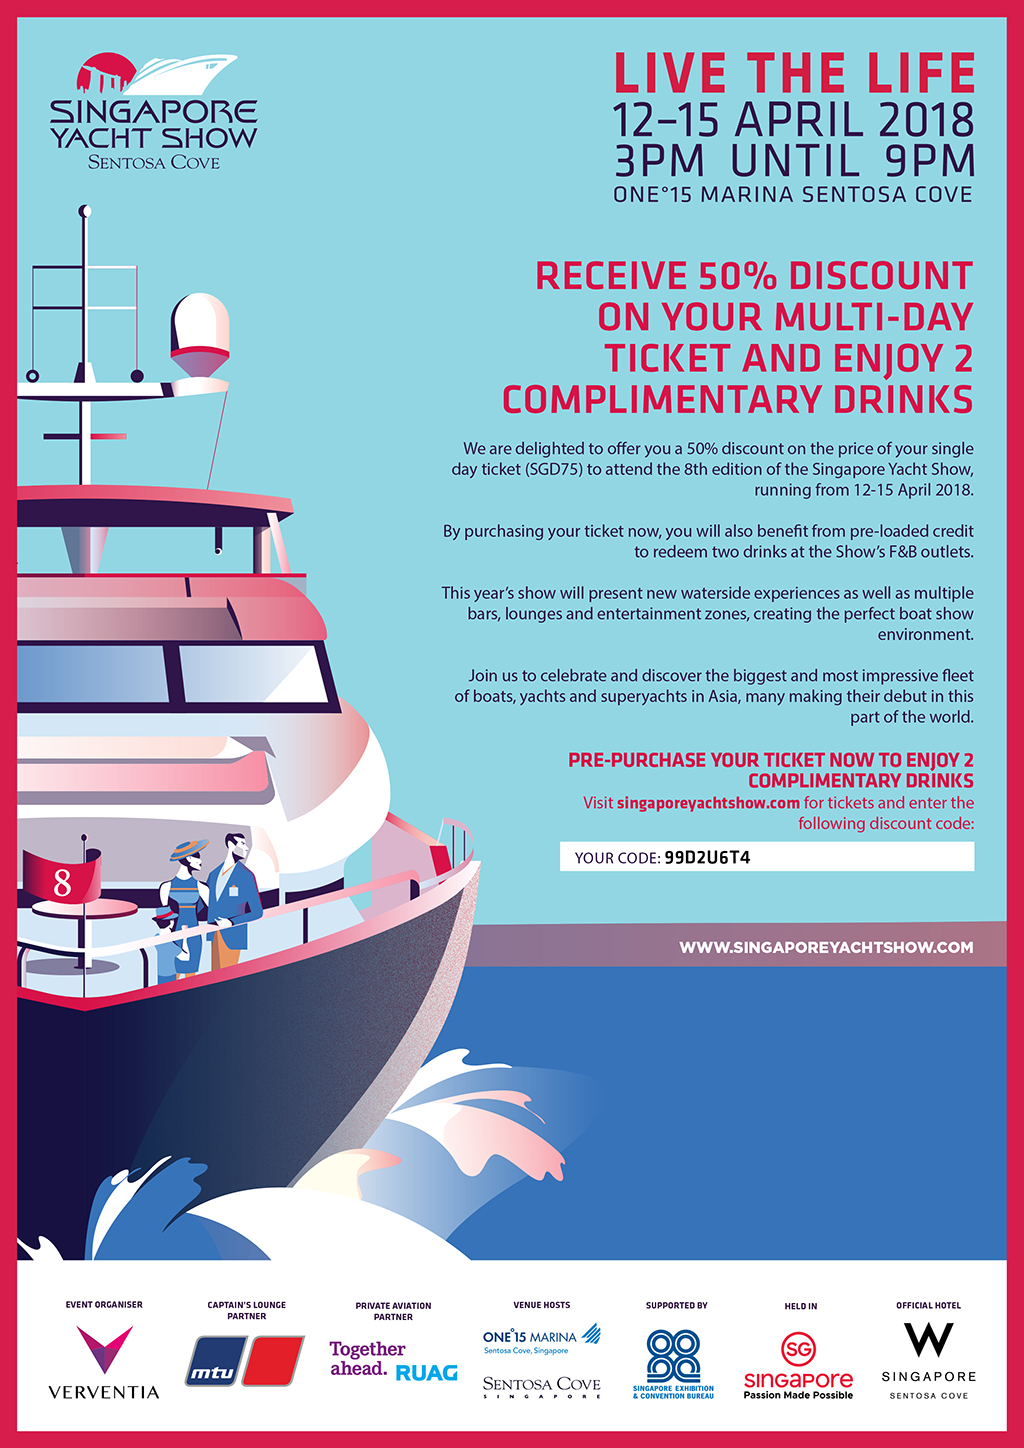 Singapore Yacht Show advert for discounted tickets